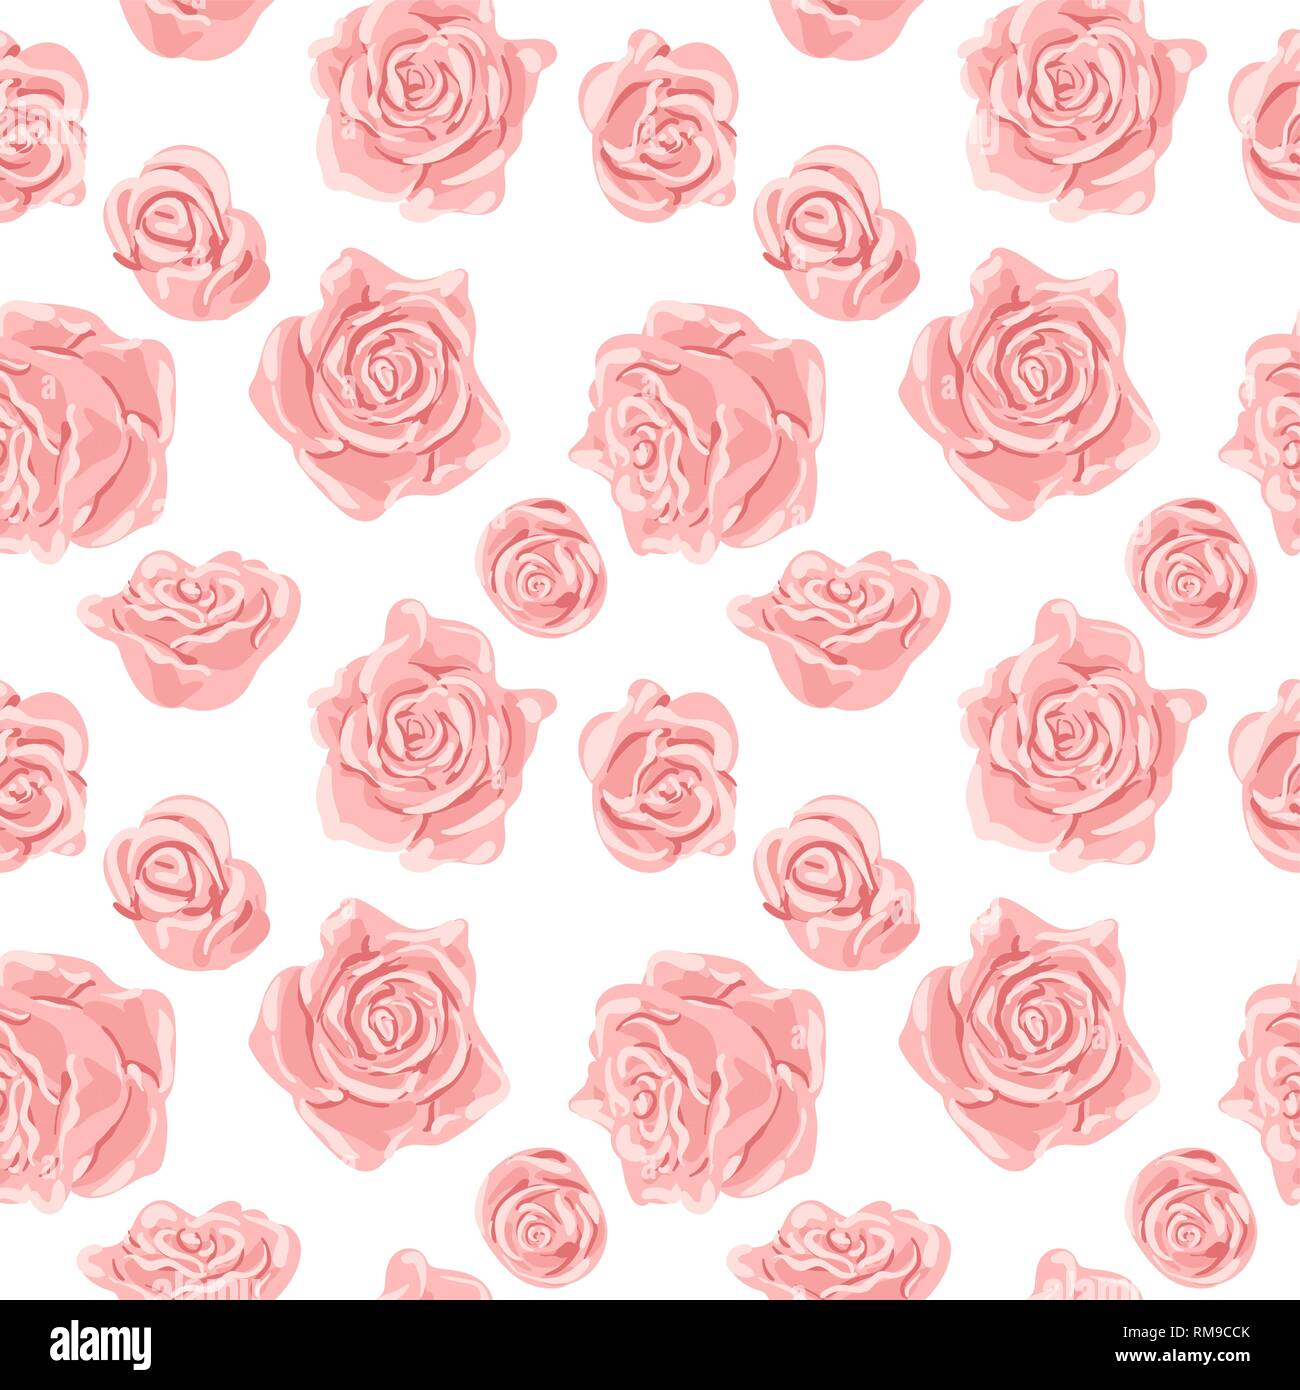 Seamless pattern with pink and white roses. Romantic wallpaper. Hand painted watercolor botanical illustration.